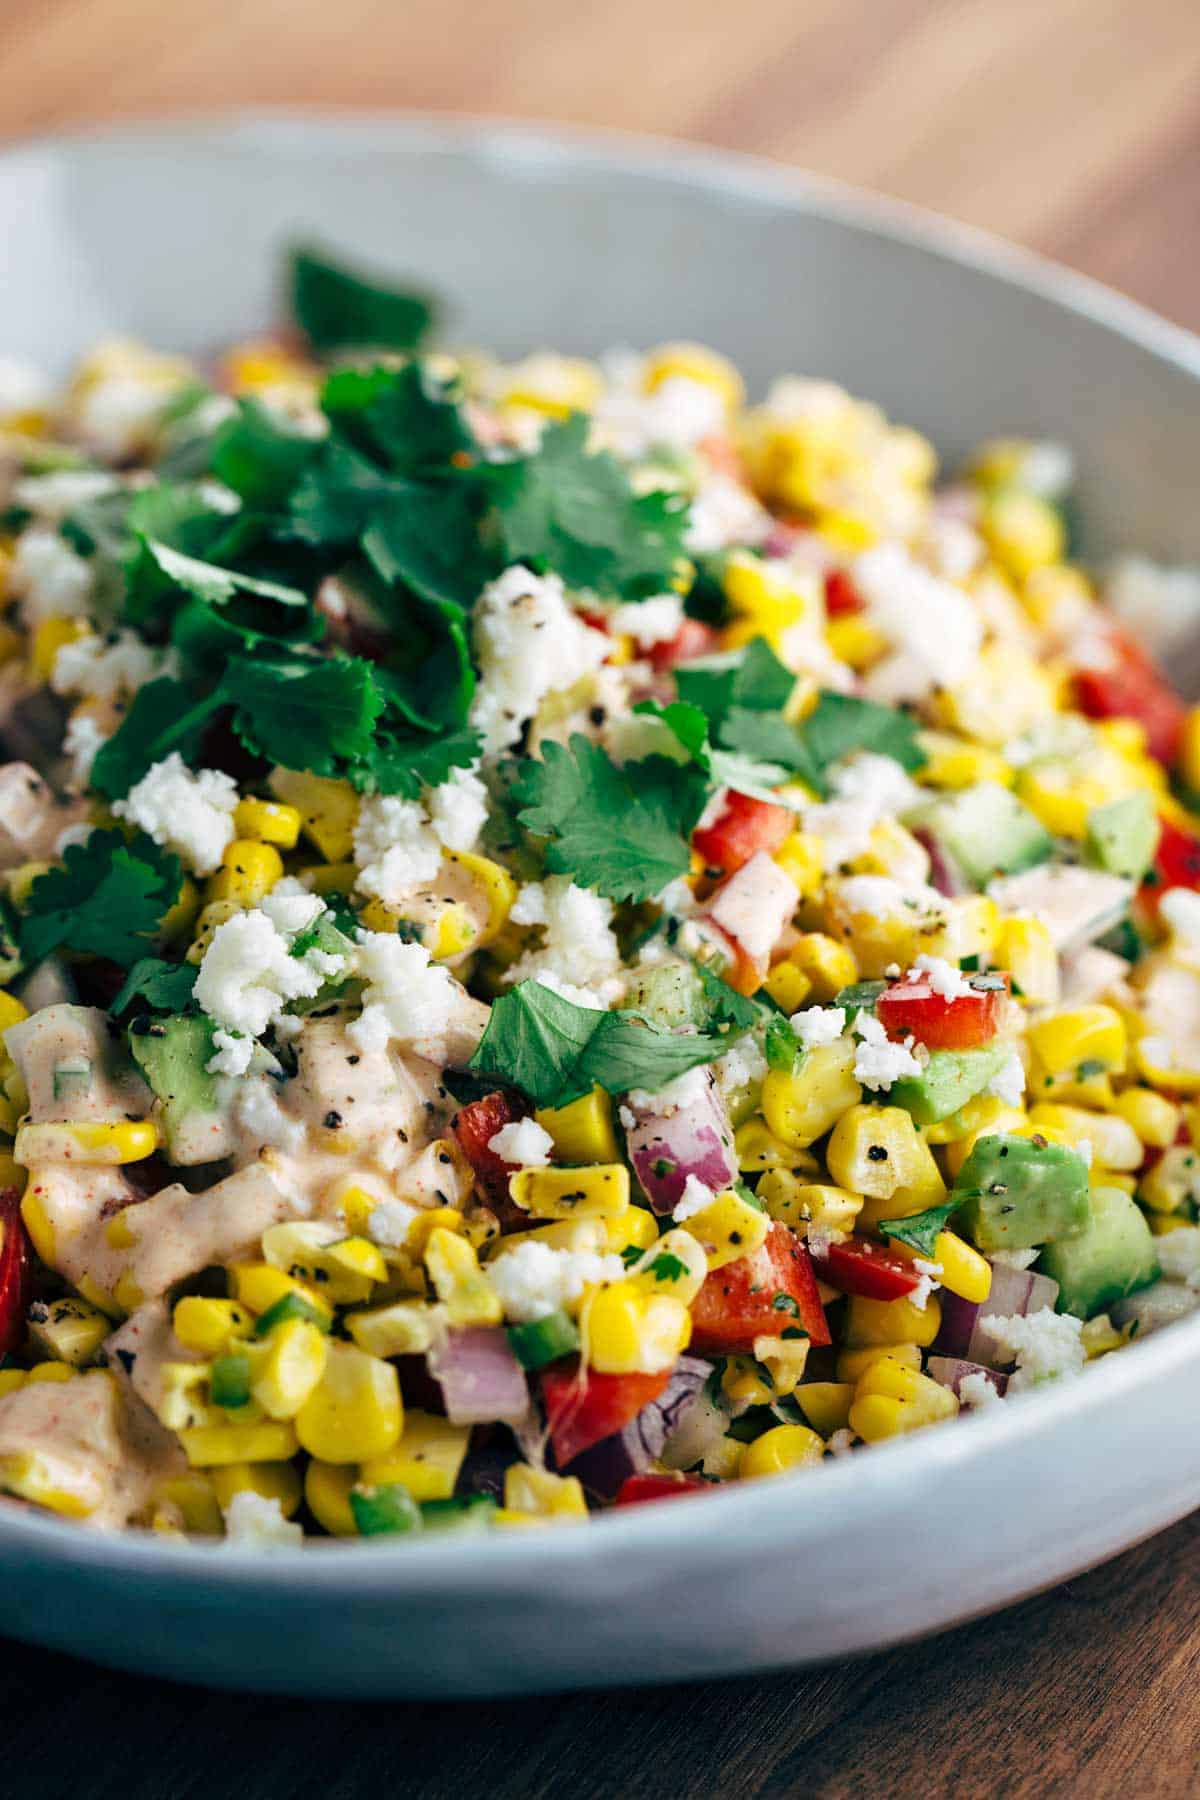 A bowl of corn salad with chipotle dressing and garnish